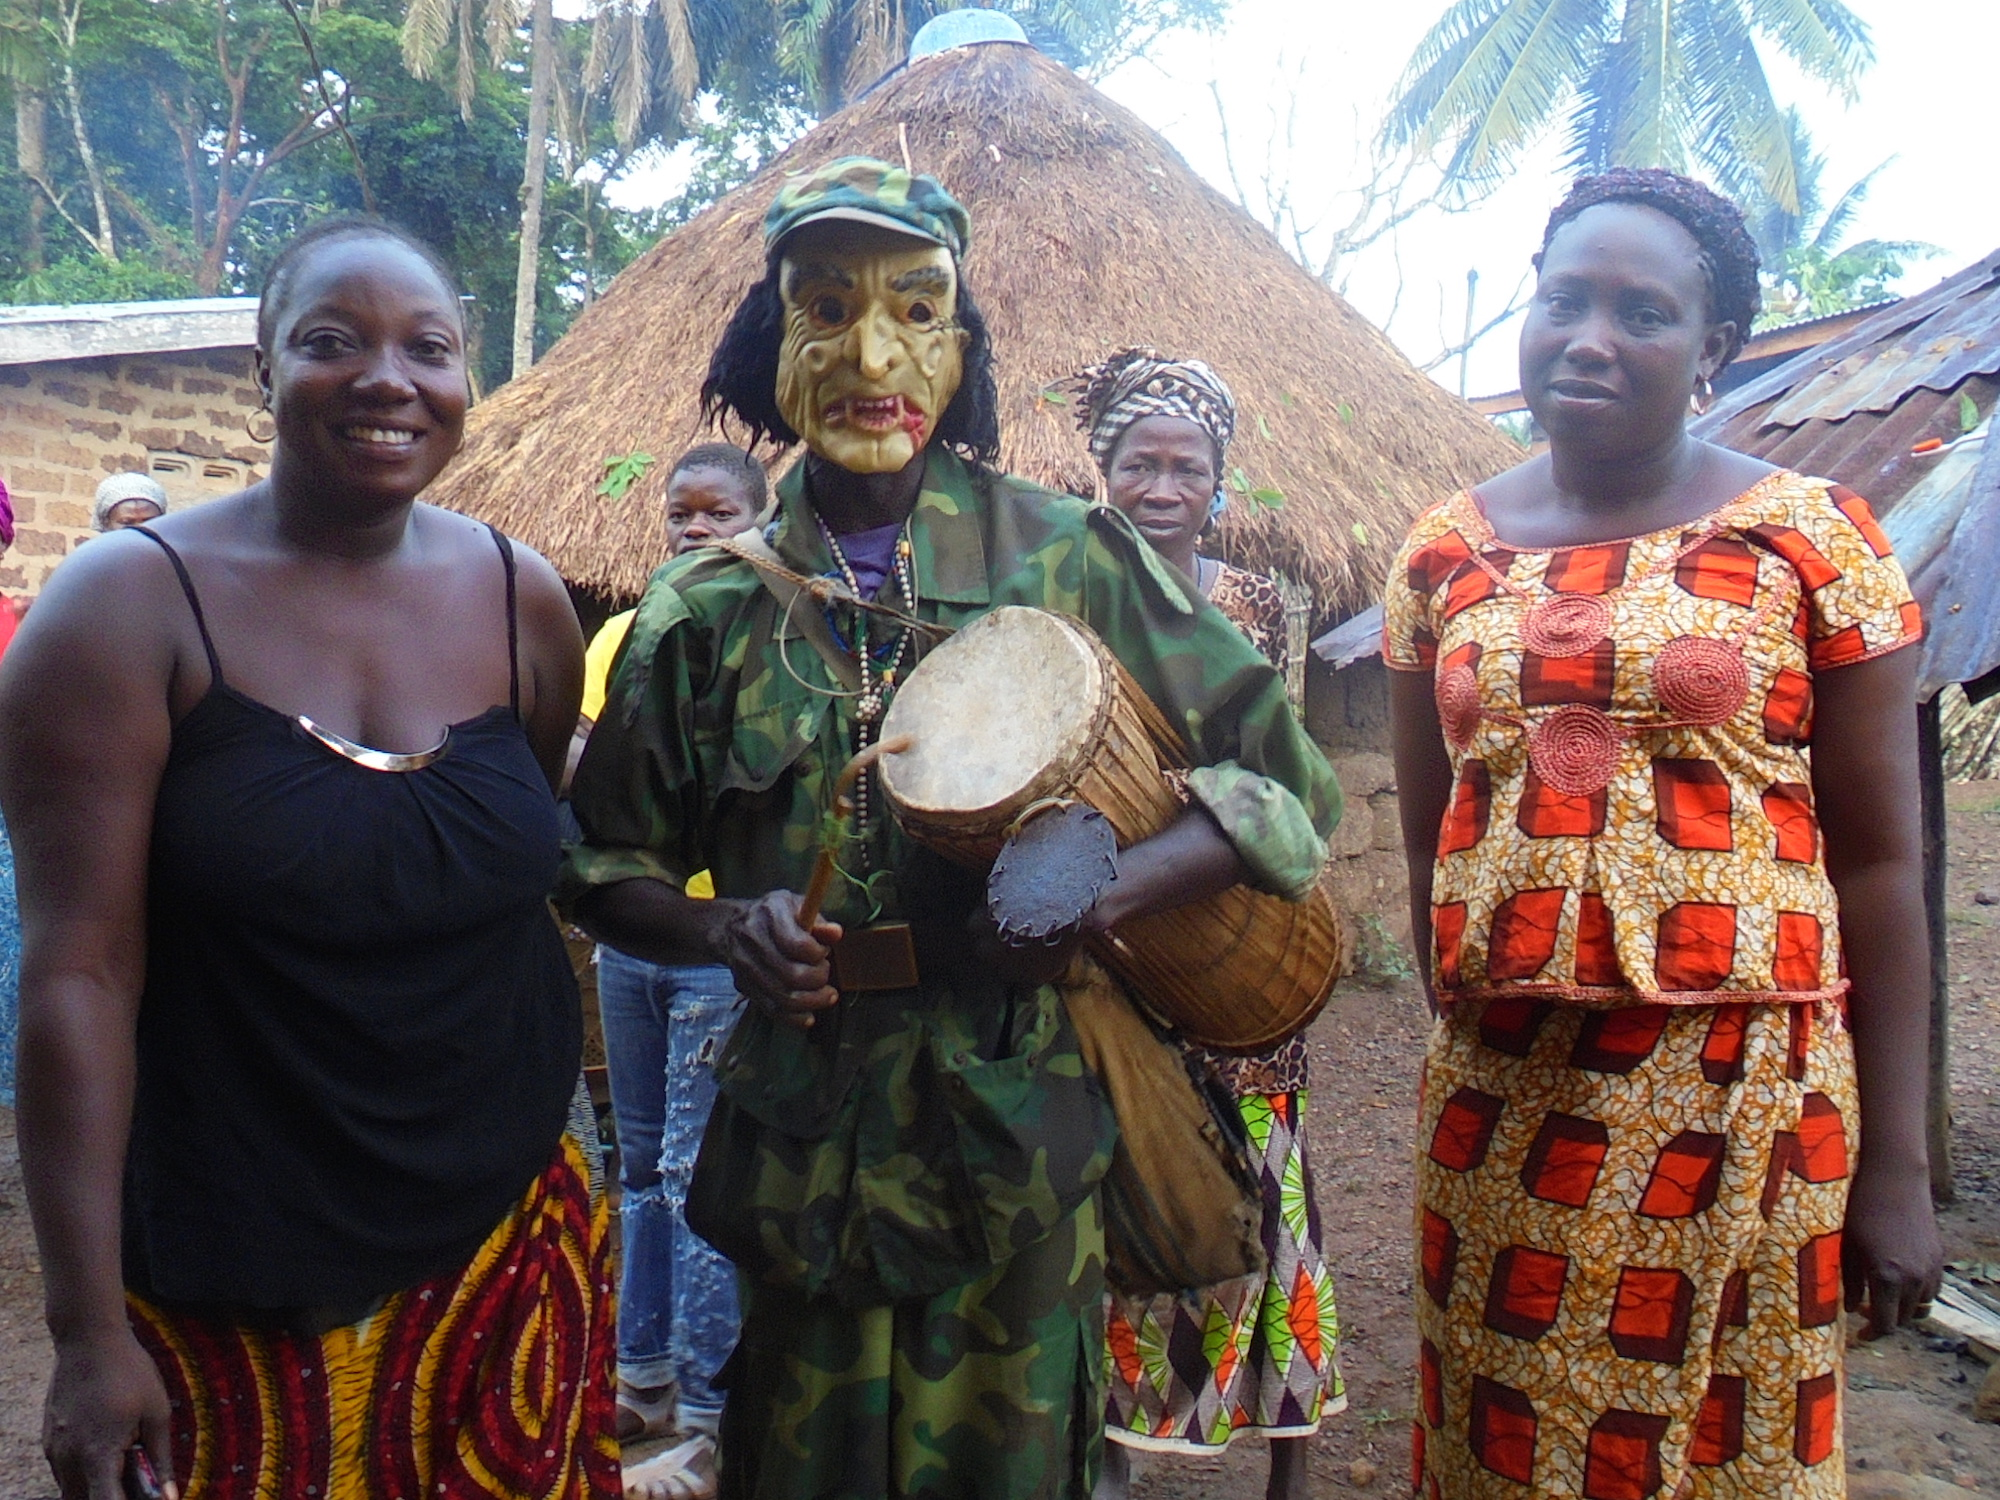 Drummers and dancers often come dressed in costume or masks as part of traditonal funeral rites in Guinea. Tamba Lamine Ouendeno was buried in April 2015, more than a year after his death from Ebola due to the clash between government restrictions on publ